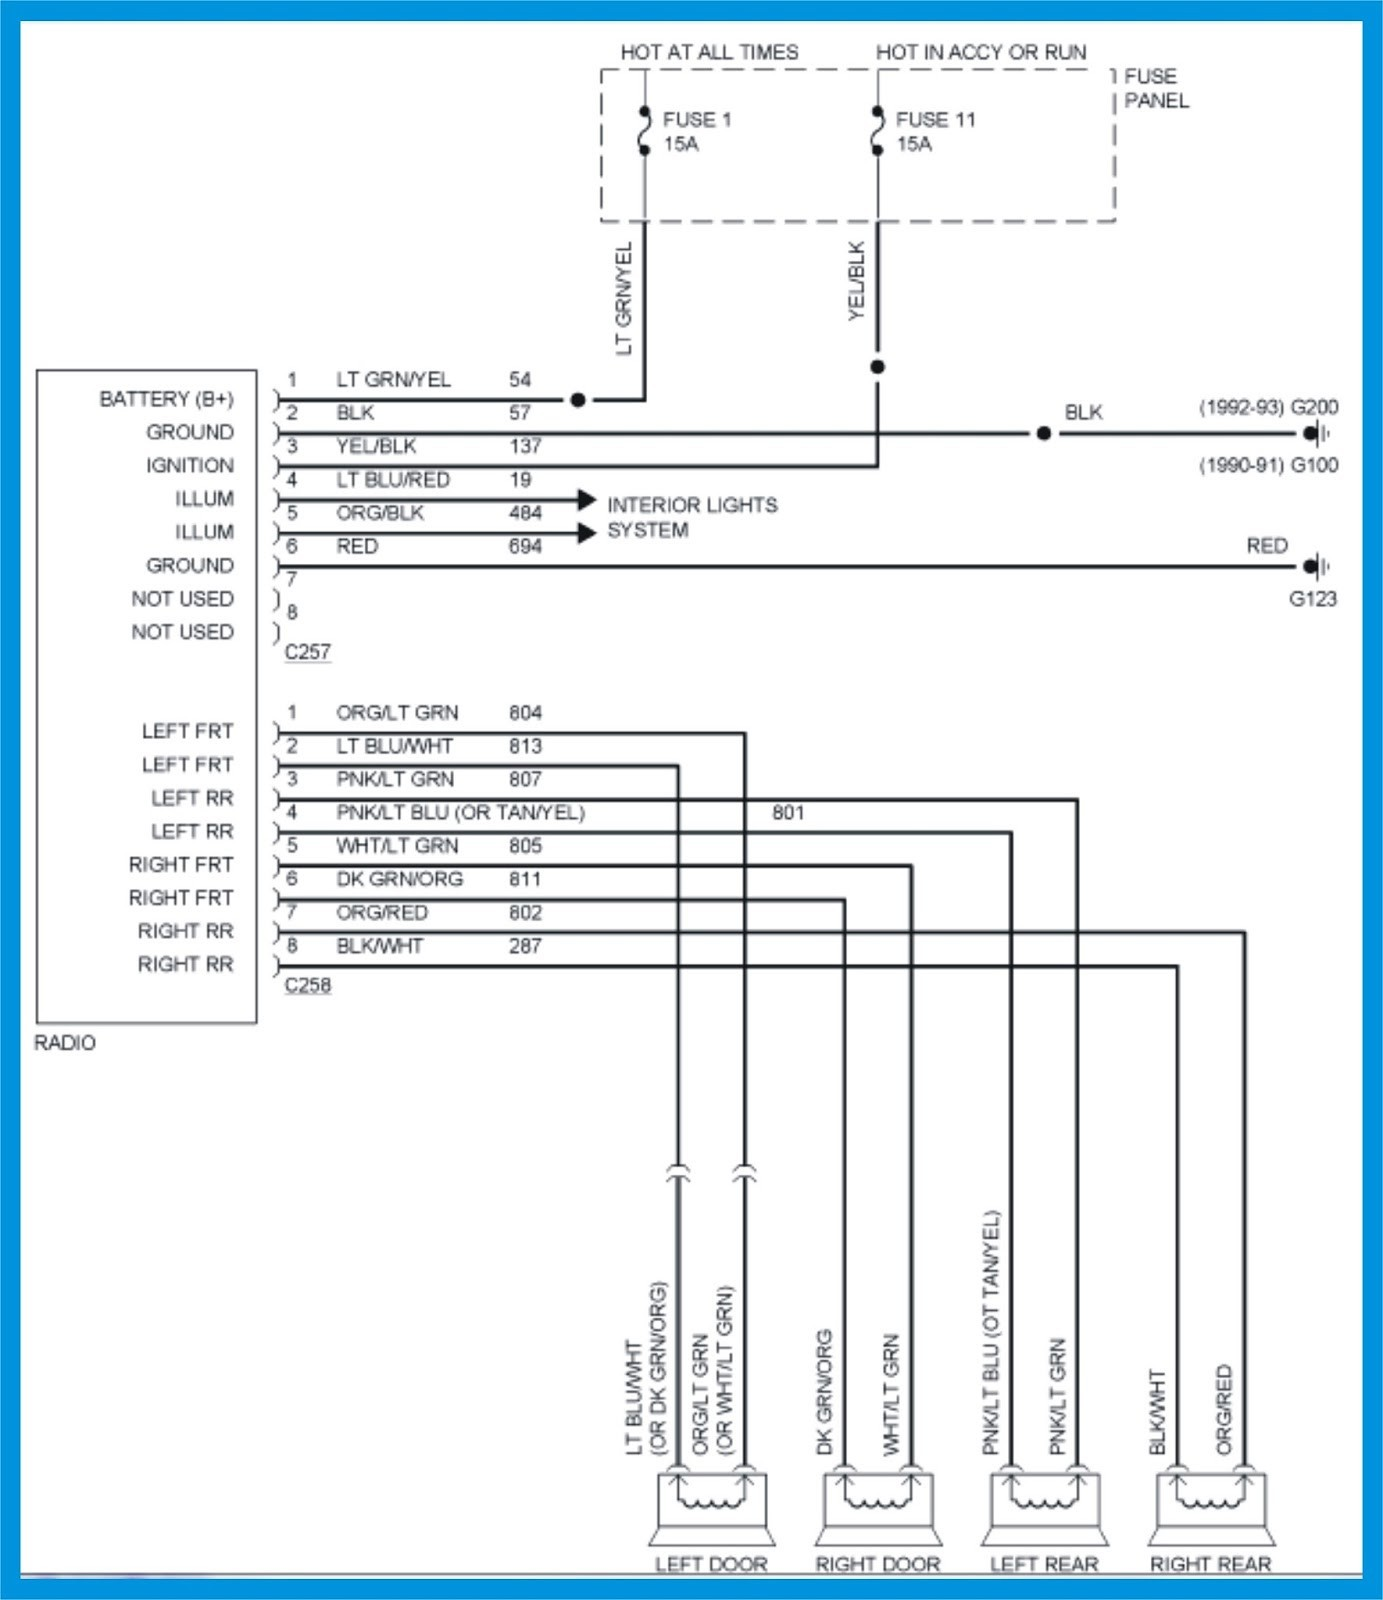 87 ford ranger wiring harness simple wiring diagram rh 71 mara cujas de Wiring Diagram for 2003 Ford Ranger 4.0 wiring diagram for 2003 ford ranger radio